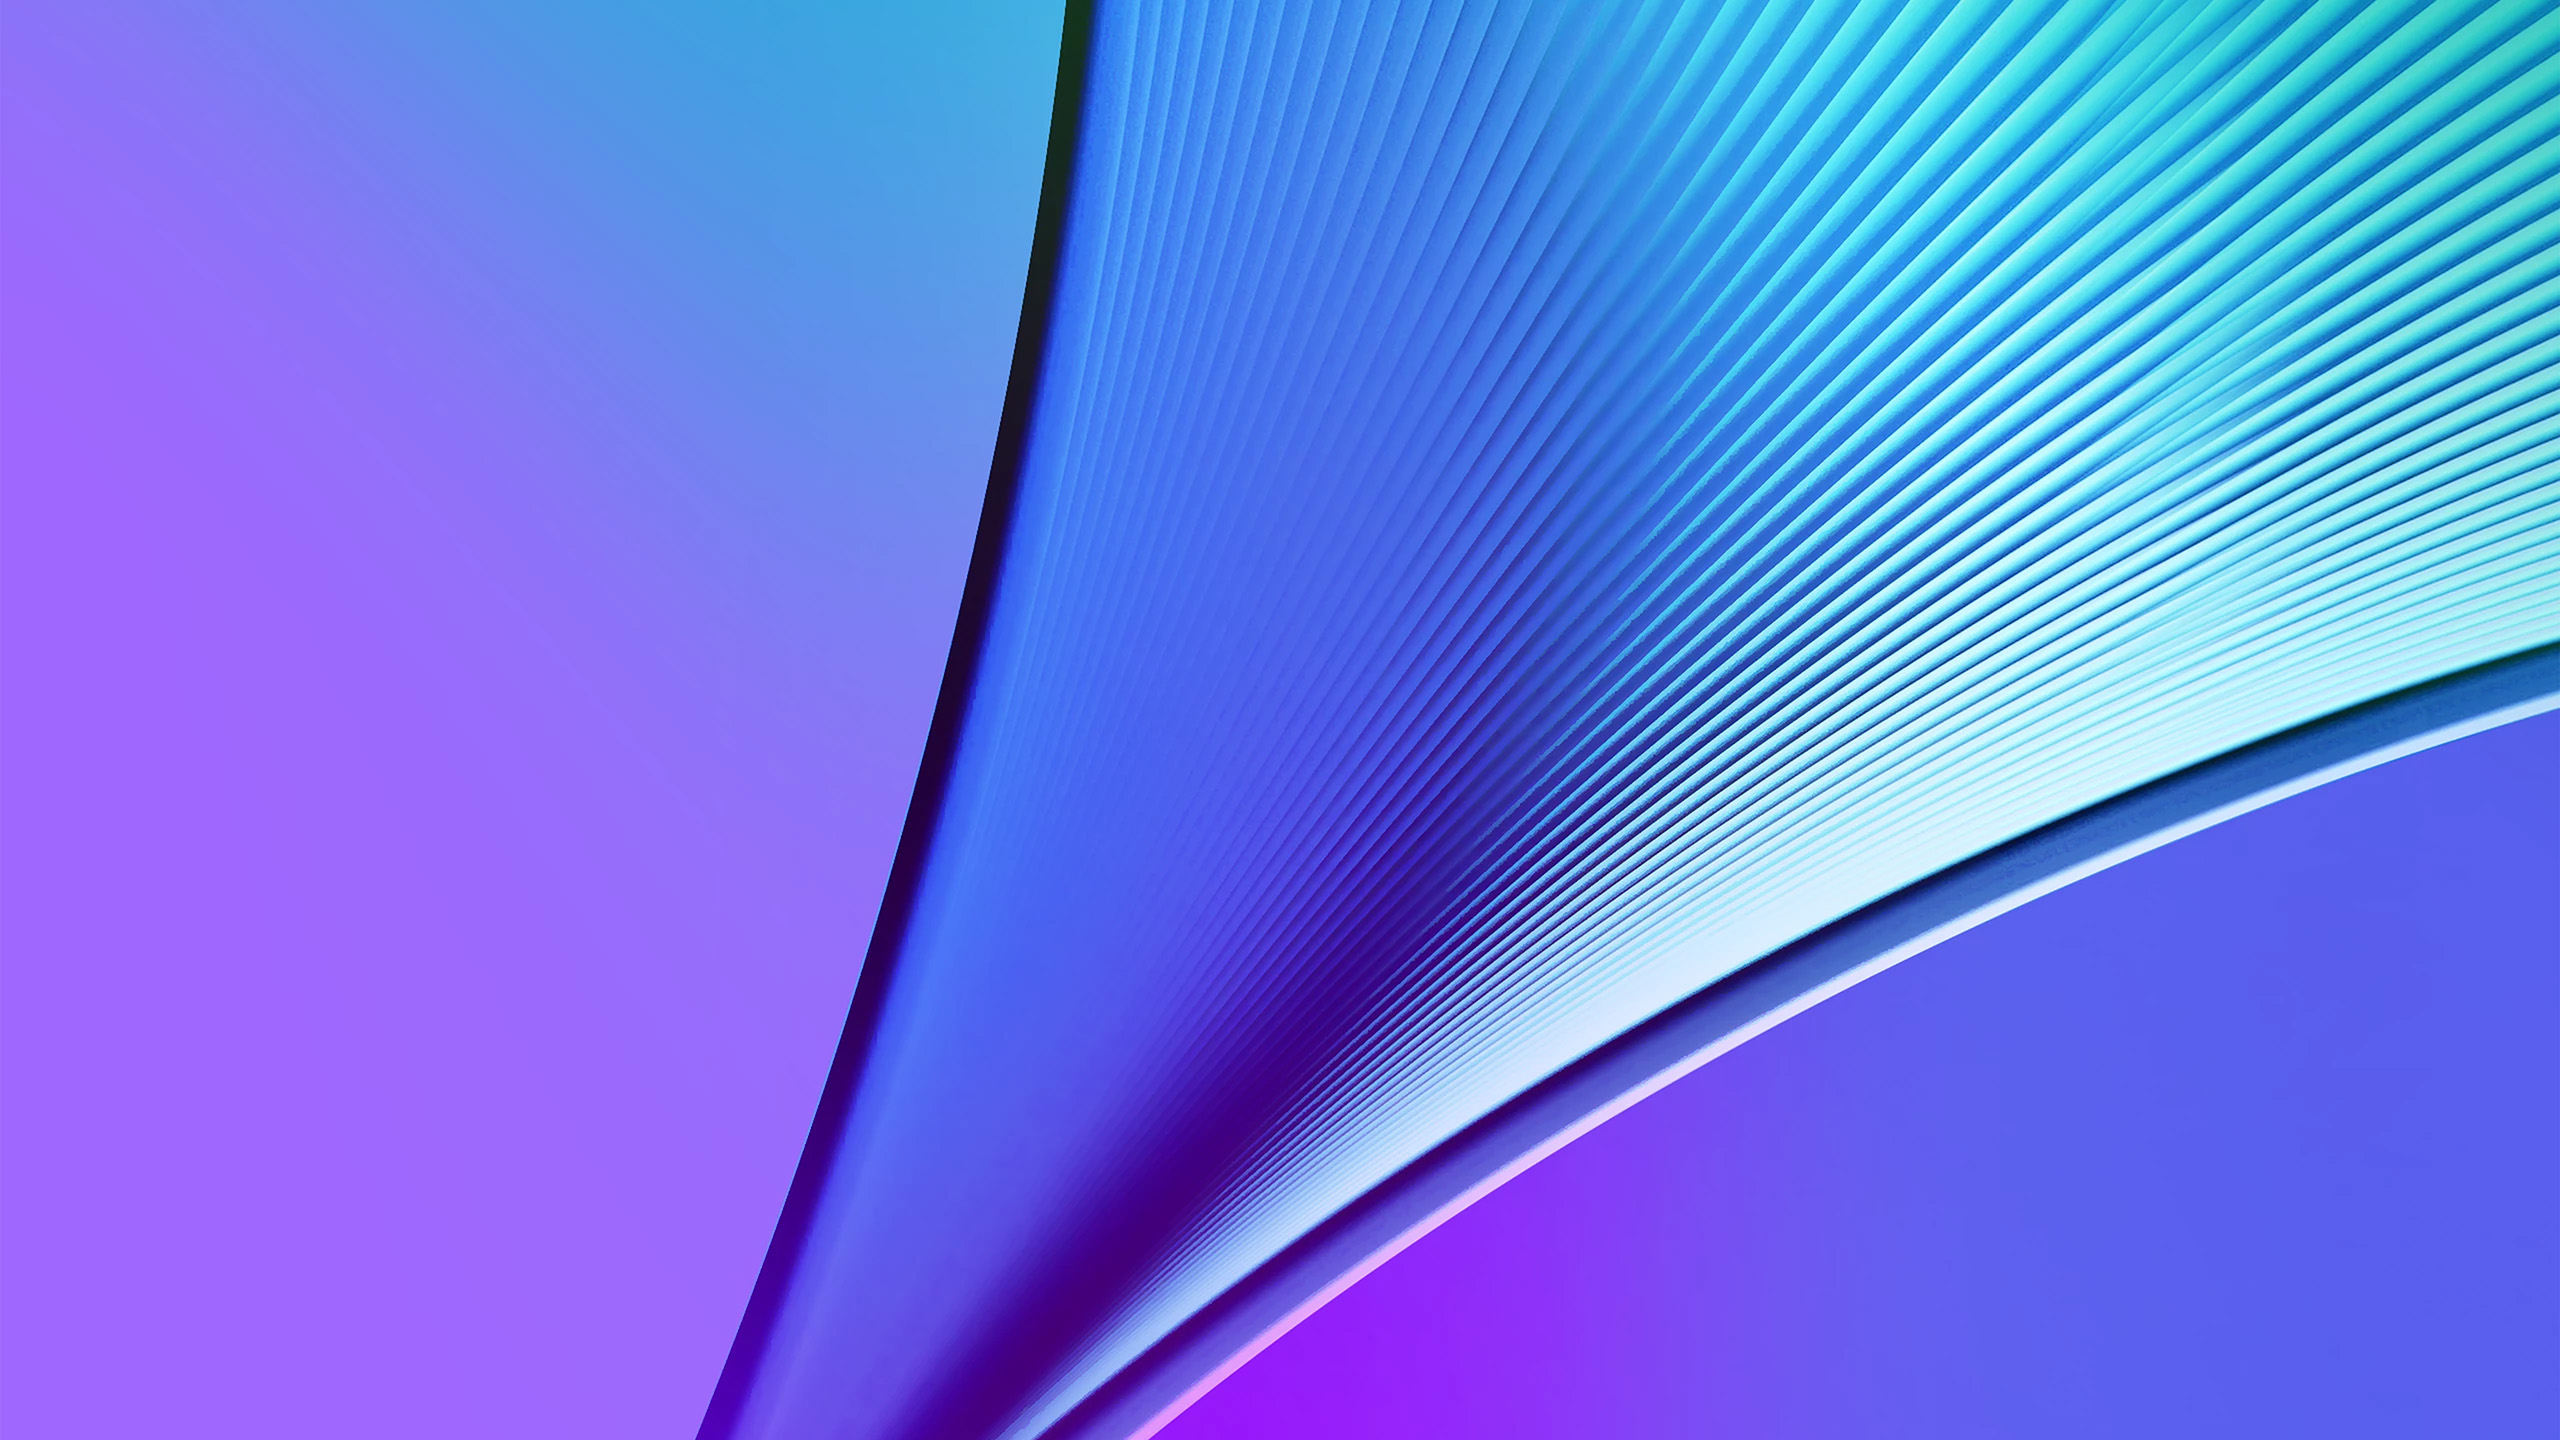 Xiaomi Redmi Note 5 Pro Wallpaper With Abstract Blue Light: Vm38-blue-layer-samsung-galaxy-purple-pattern